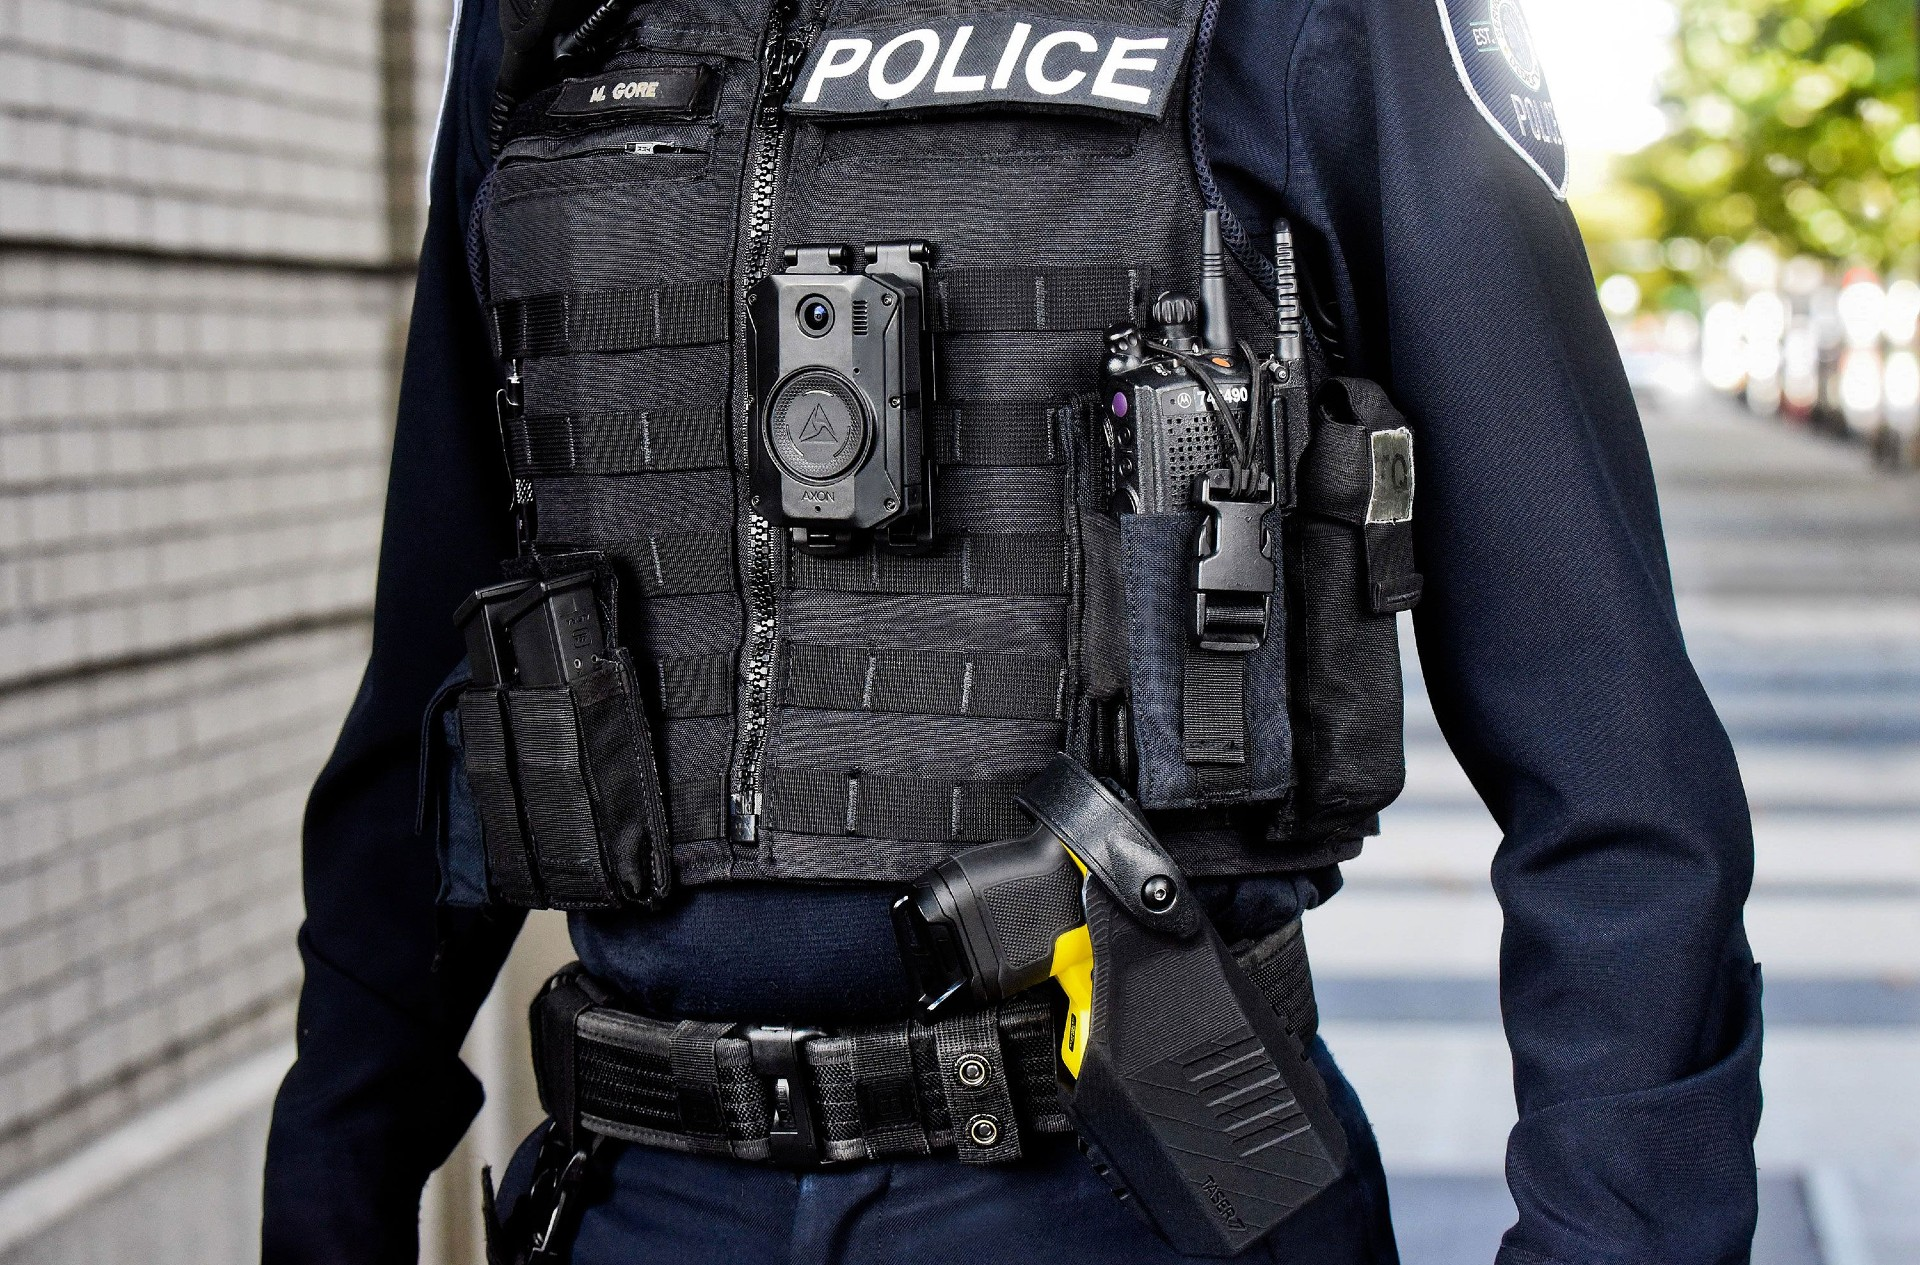 Green Bay Packers Help Equip Green Bay Police with Axon Body Cameras, Digital Evidence Management and De-escalation Tools